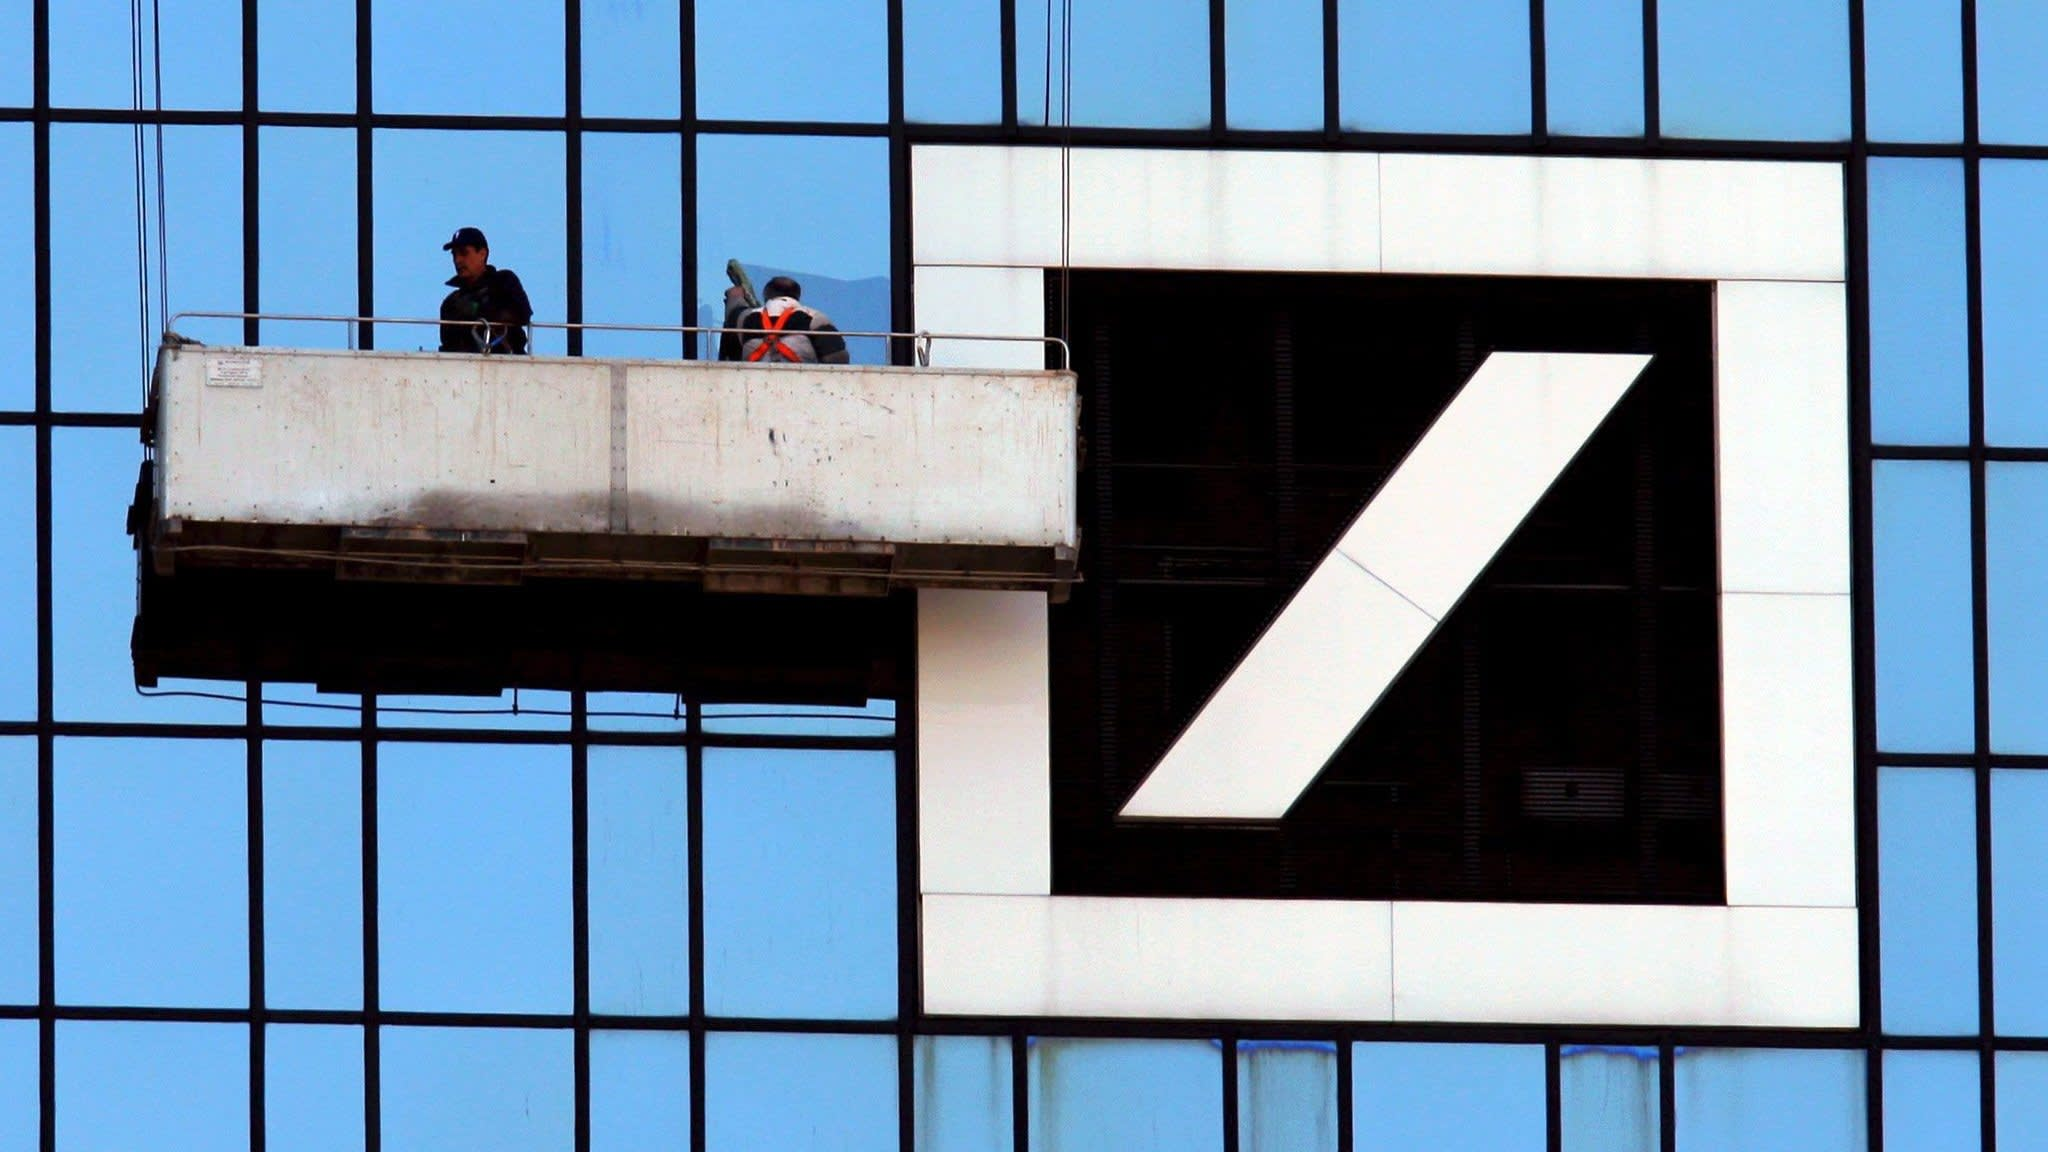 Deutsche Bank cuts up to 500 investment banking and trading jobs